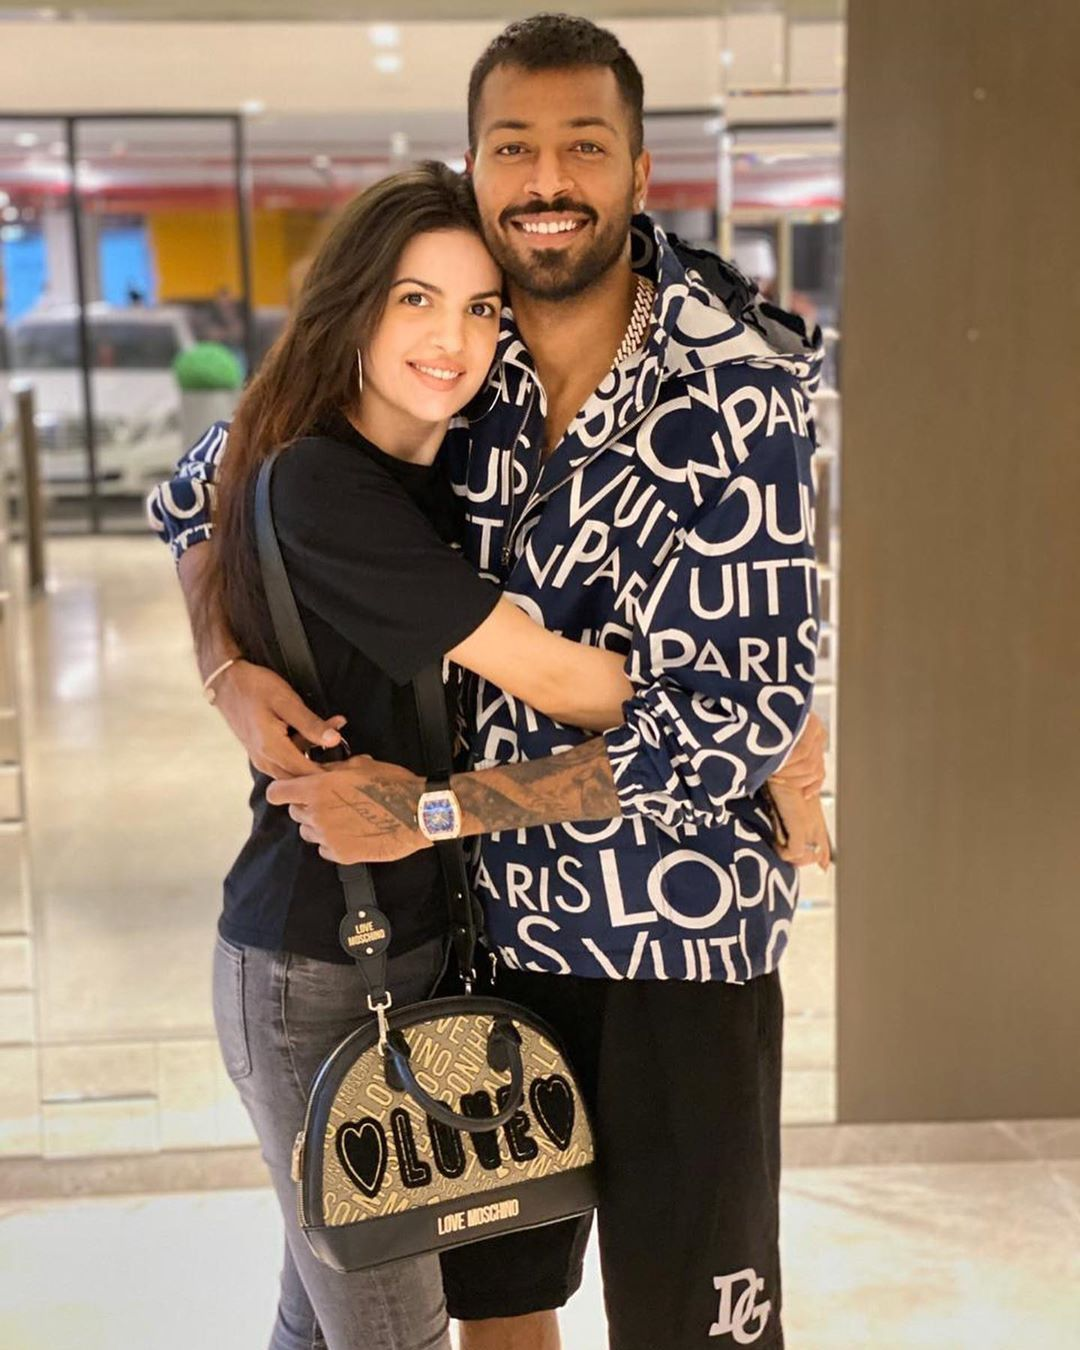 Hardik Pandya And Natasa Stankovic Wedding In 2020 Indian Party Wear Moschino Bag How To Wear